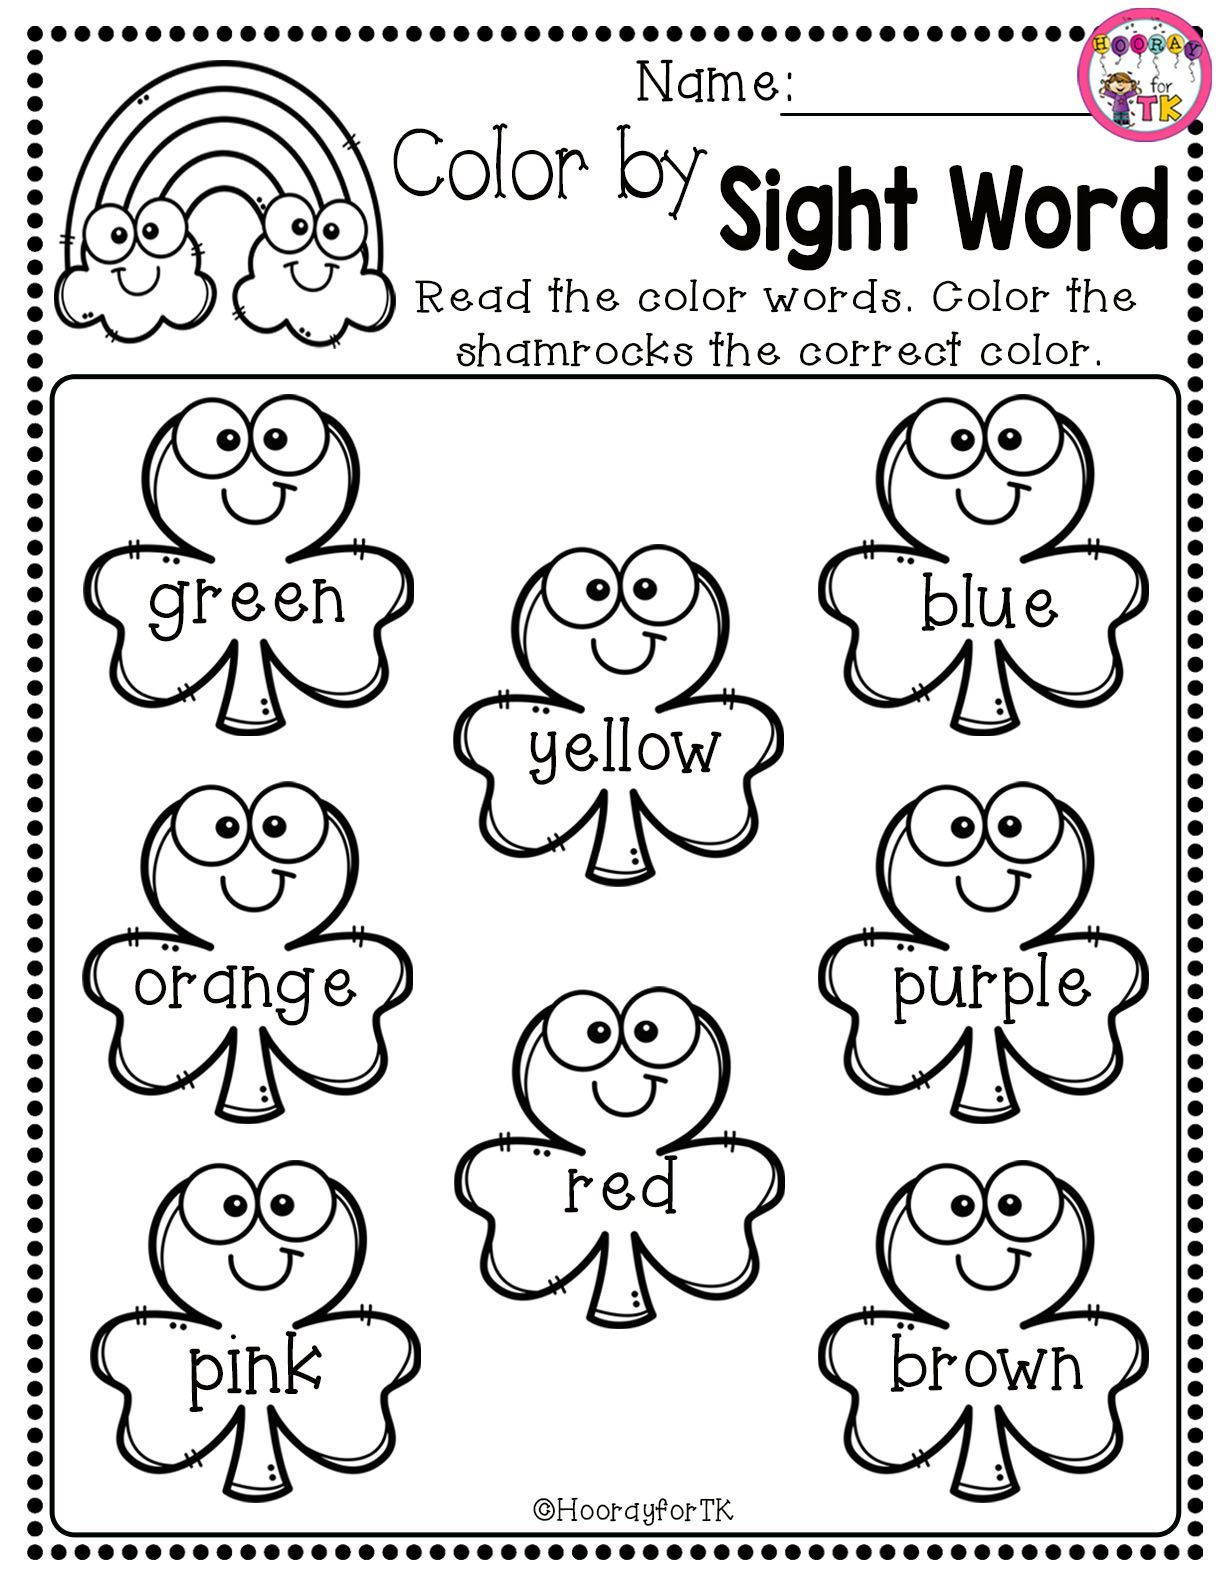 March And St Patrick 39 S Day Worksheet Kindergarten Addition Worksheets Kindergarten Colors Kindergarten Math Worksheets Kindergarten leprechaun math worksheets